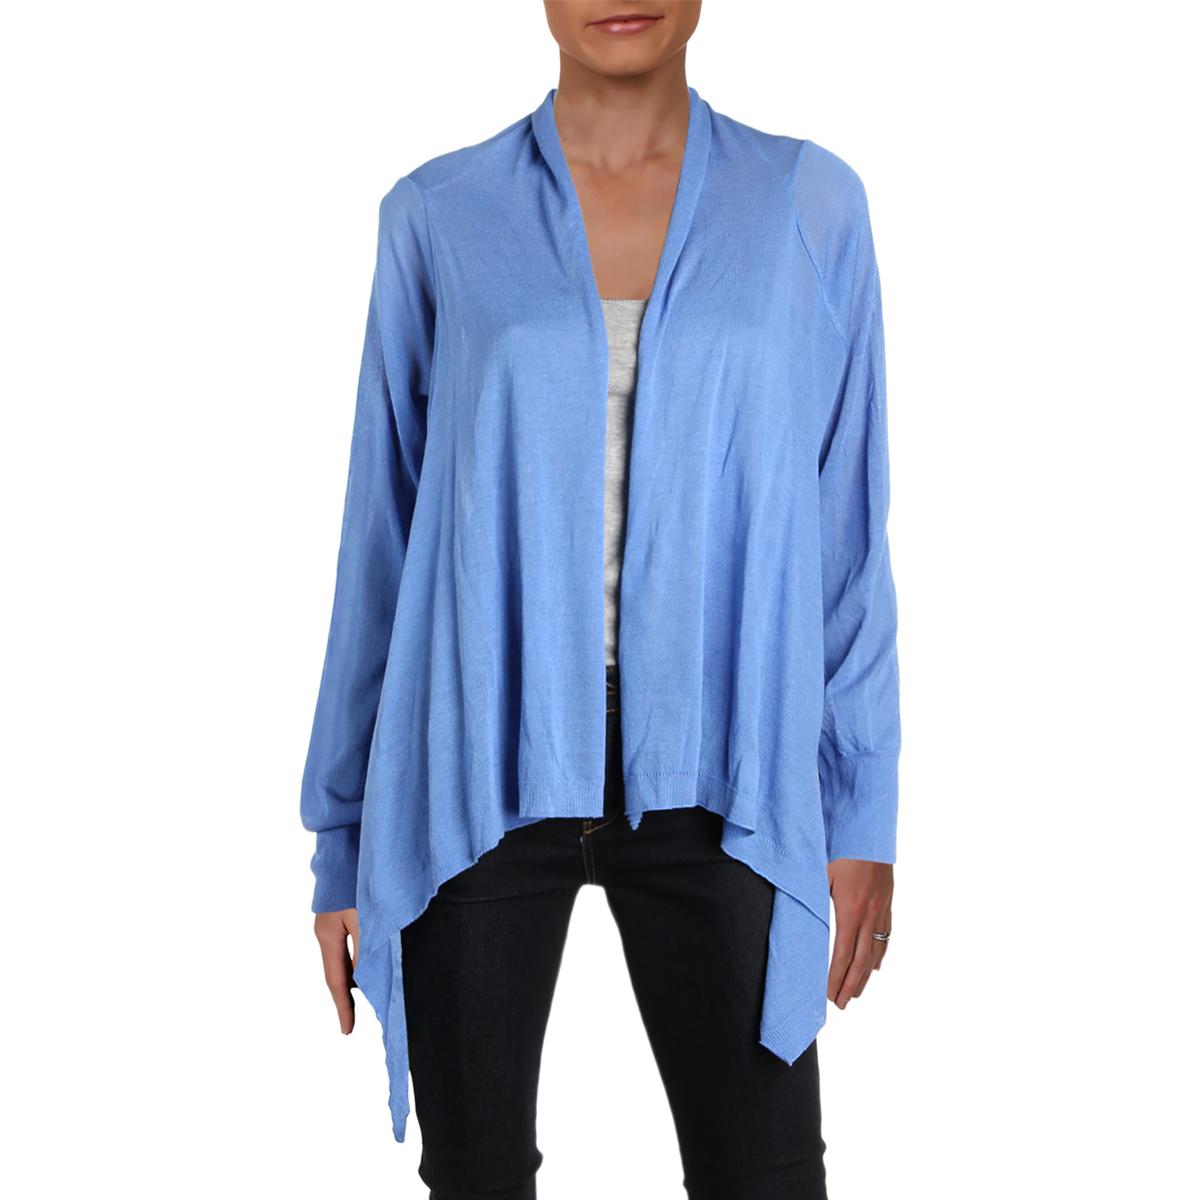 c37cf159 DKNY Womens Blue Hi-Low Open Front Day to Night Cardigan Top L BHFO ...